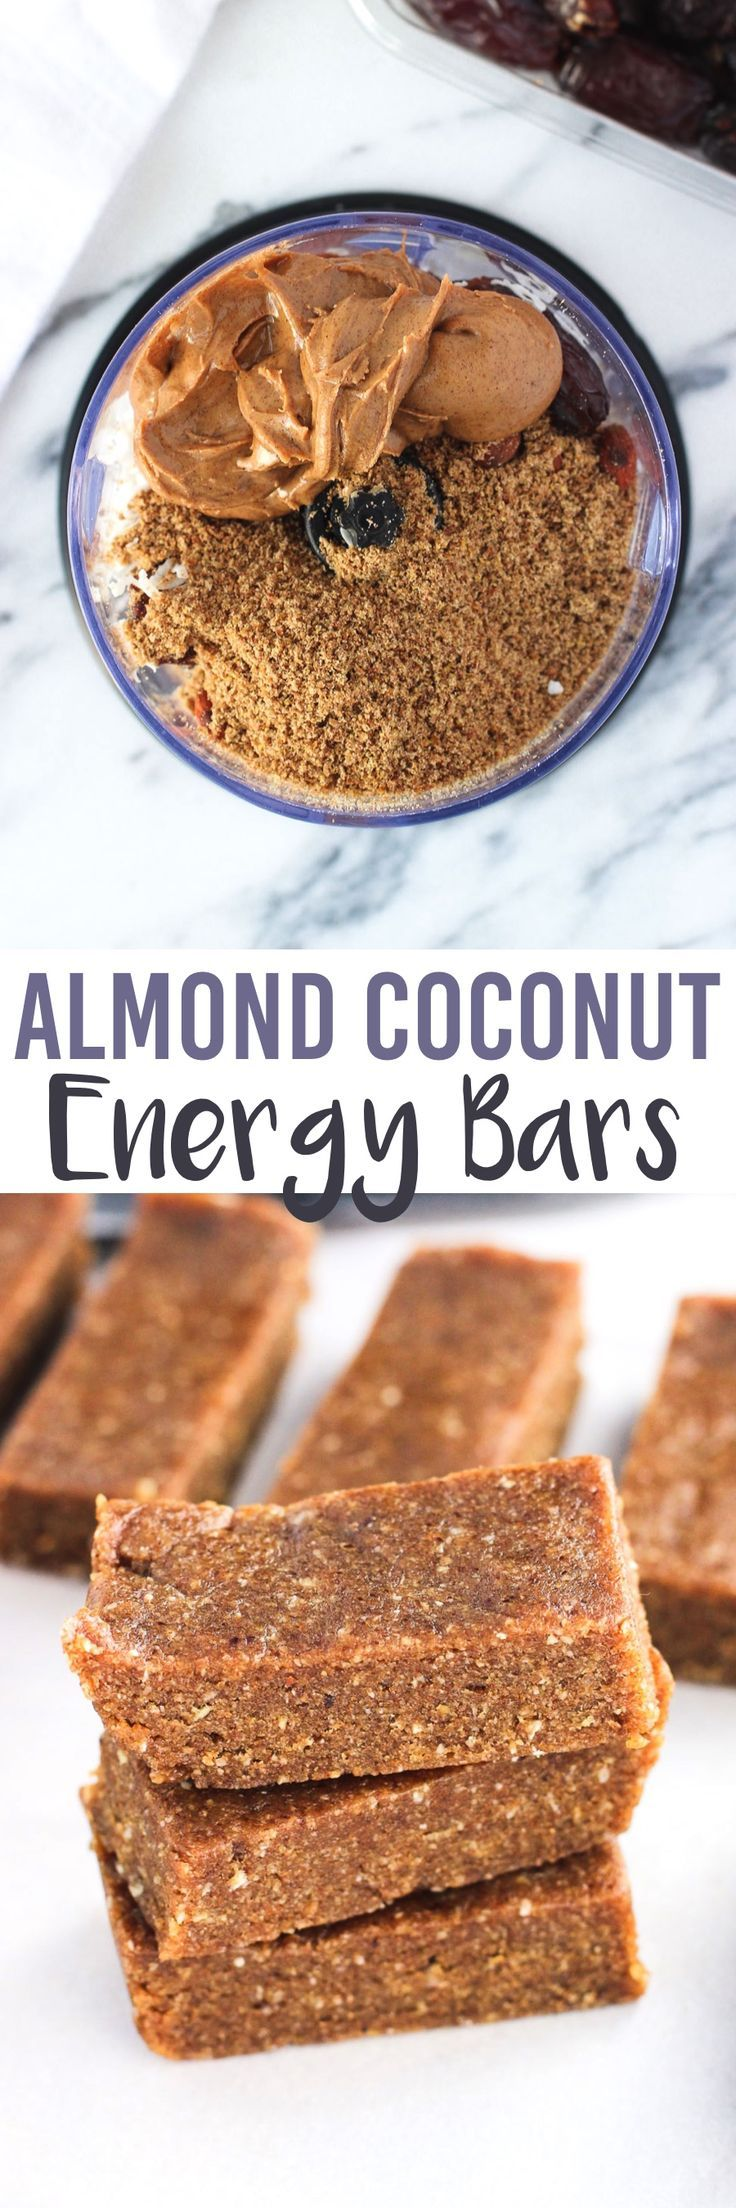 These five-ingredient Almond Coconut Energy Bars are dense and chewy with a consistency like a Larabar. Great almond and coconut flavor and vegan.